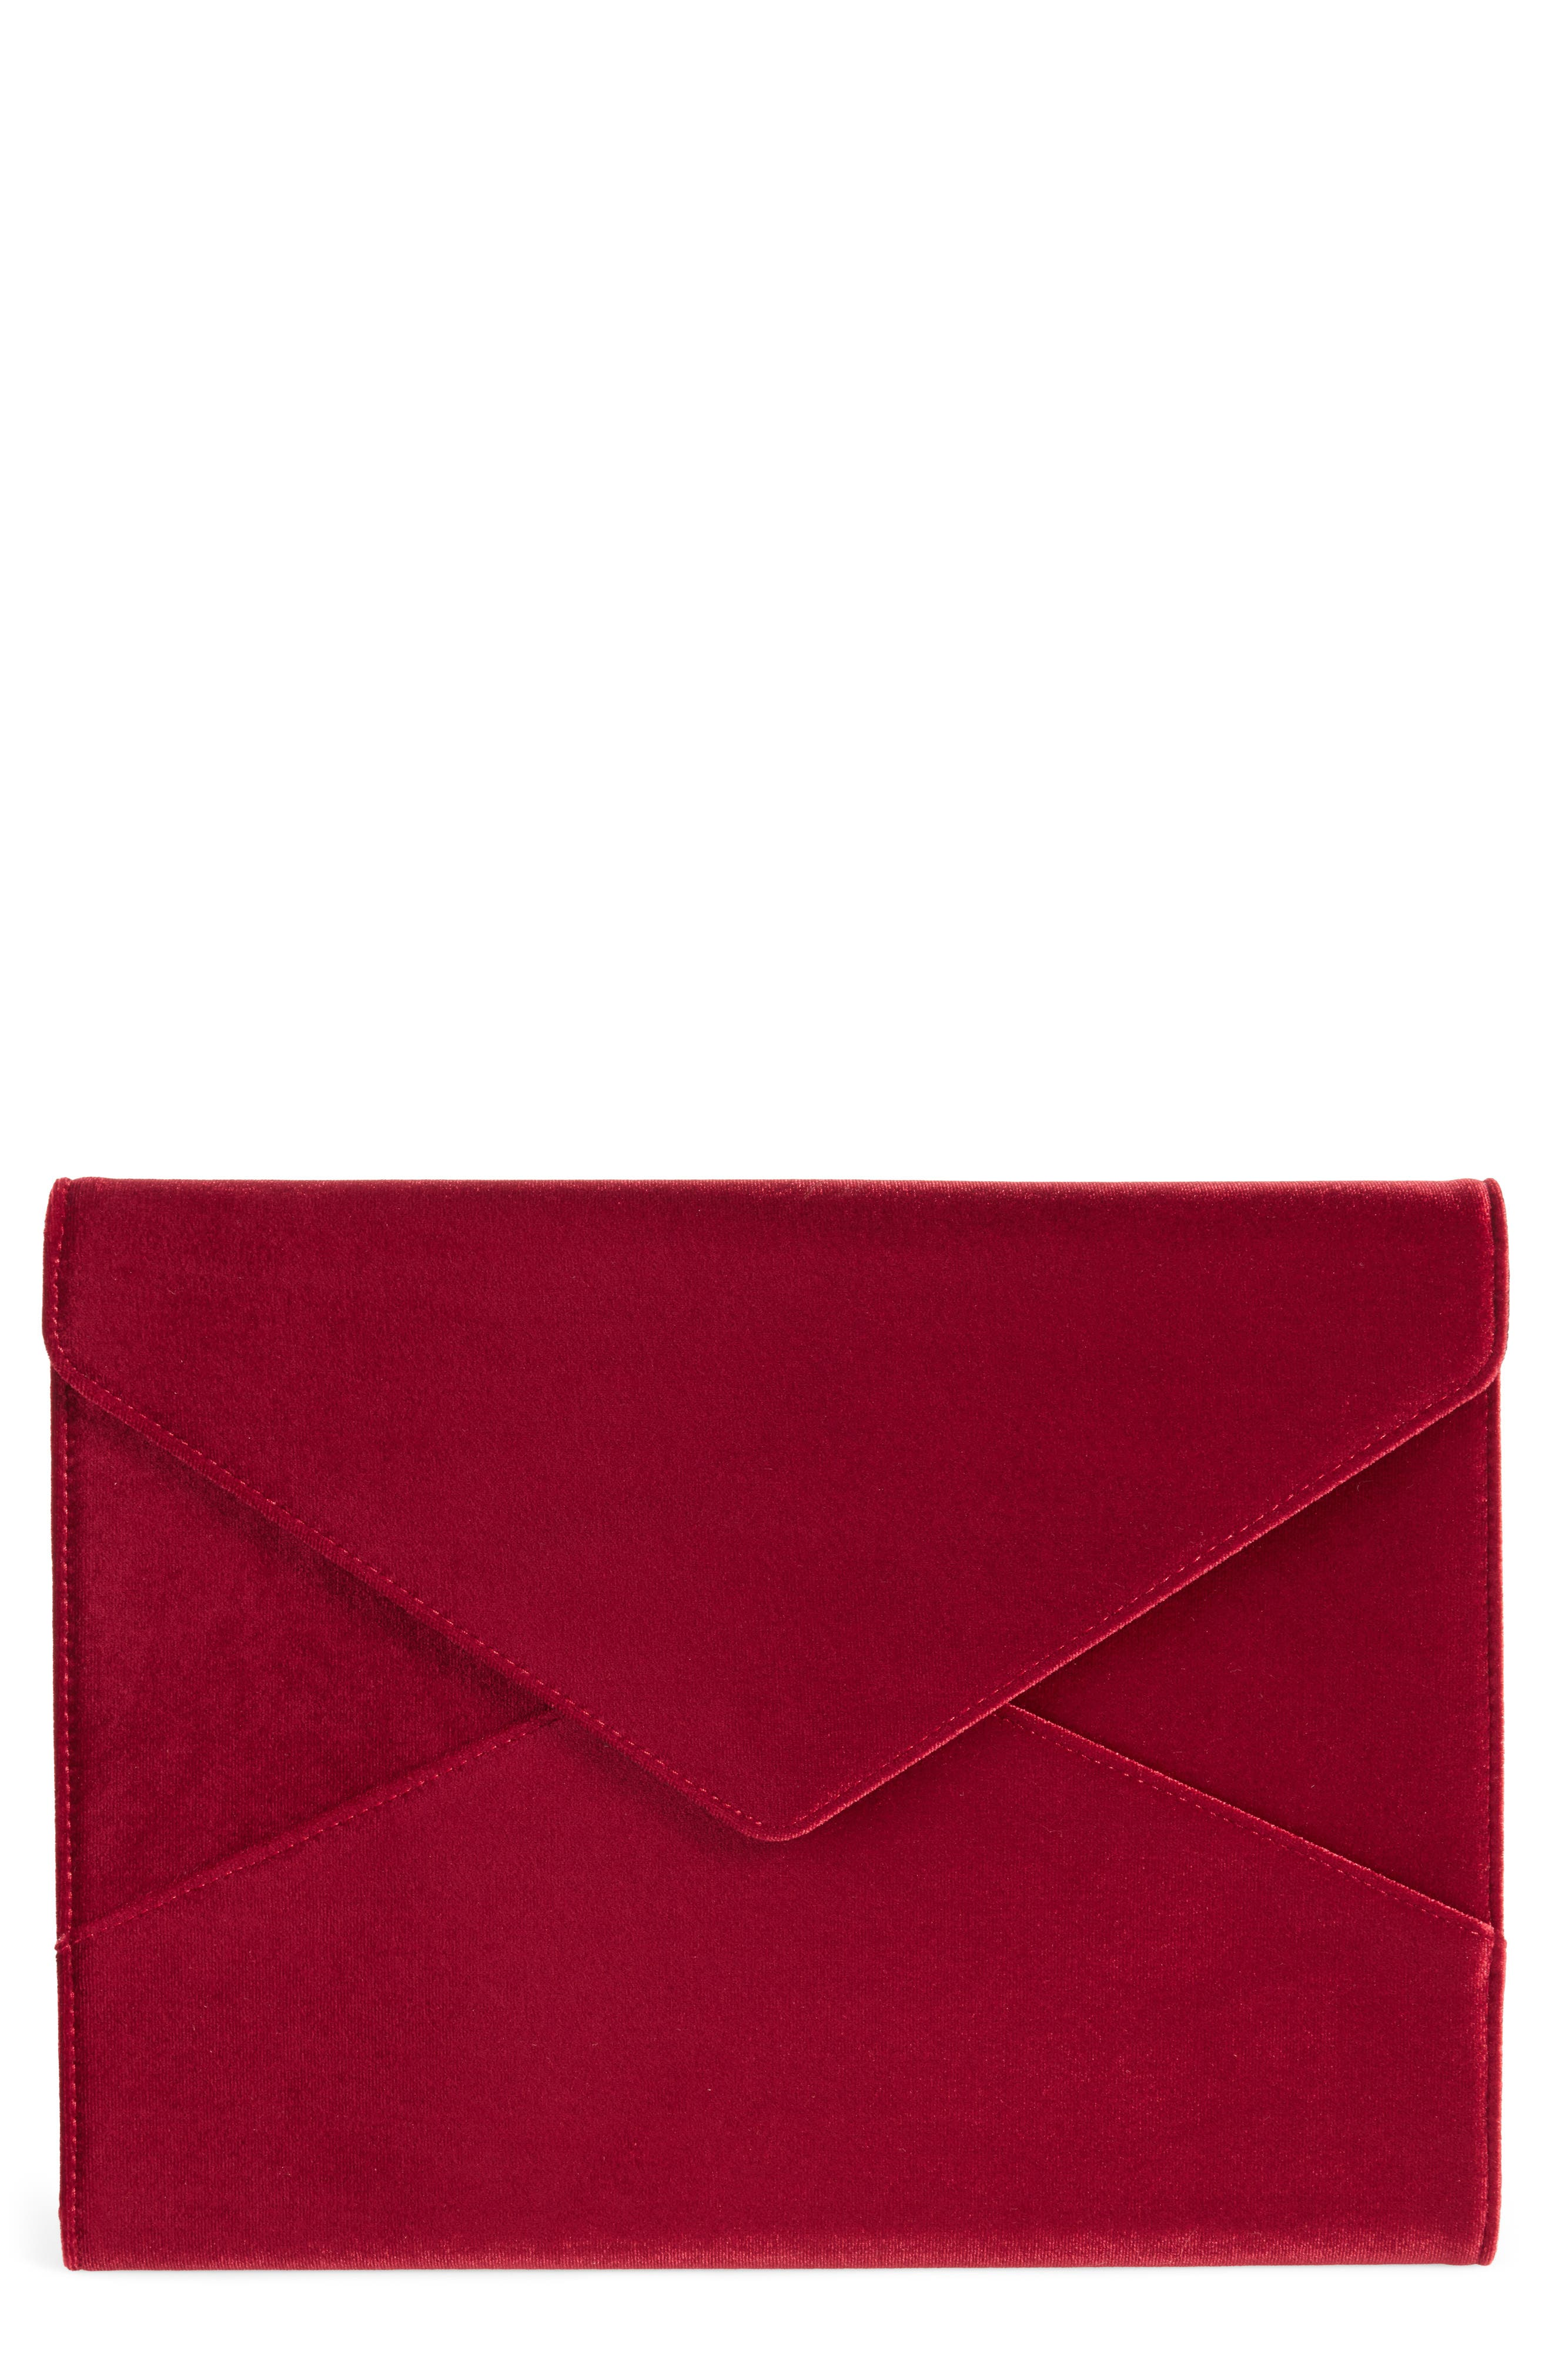 Red Velvet Laptop Clutch,                             Main thumbnail 1, color,                             Red